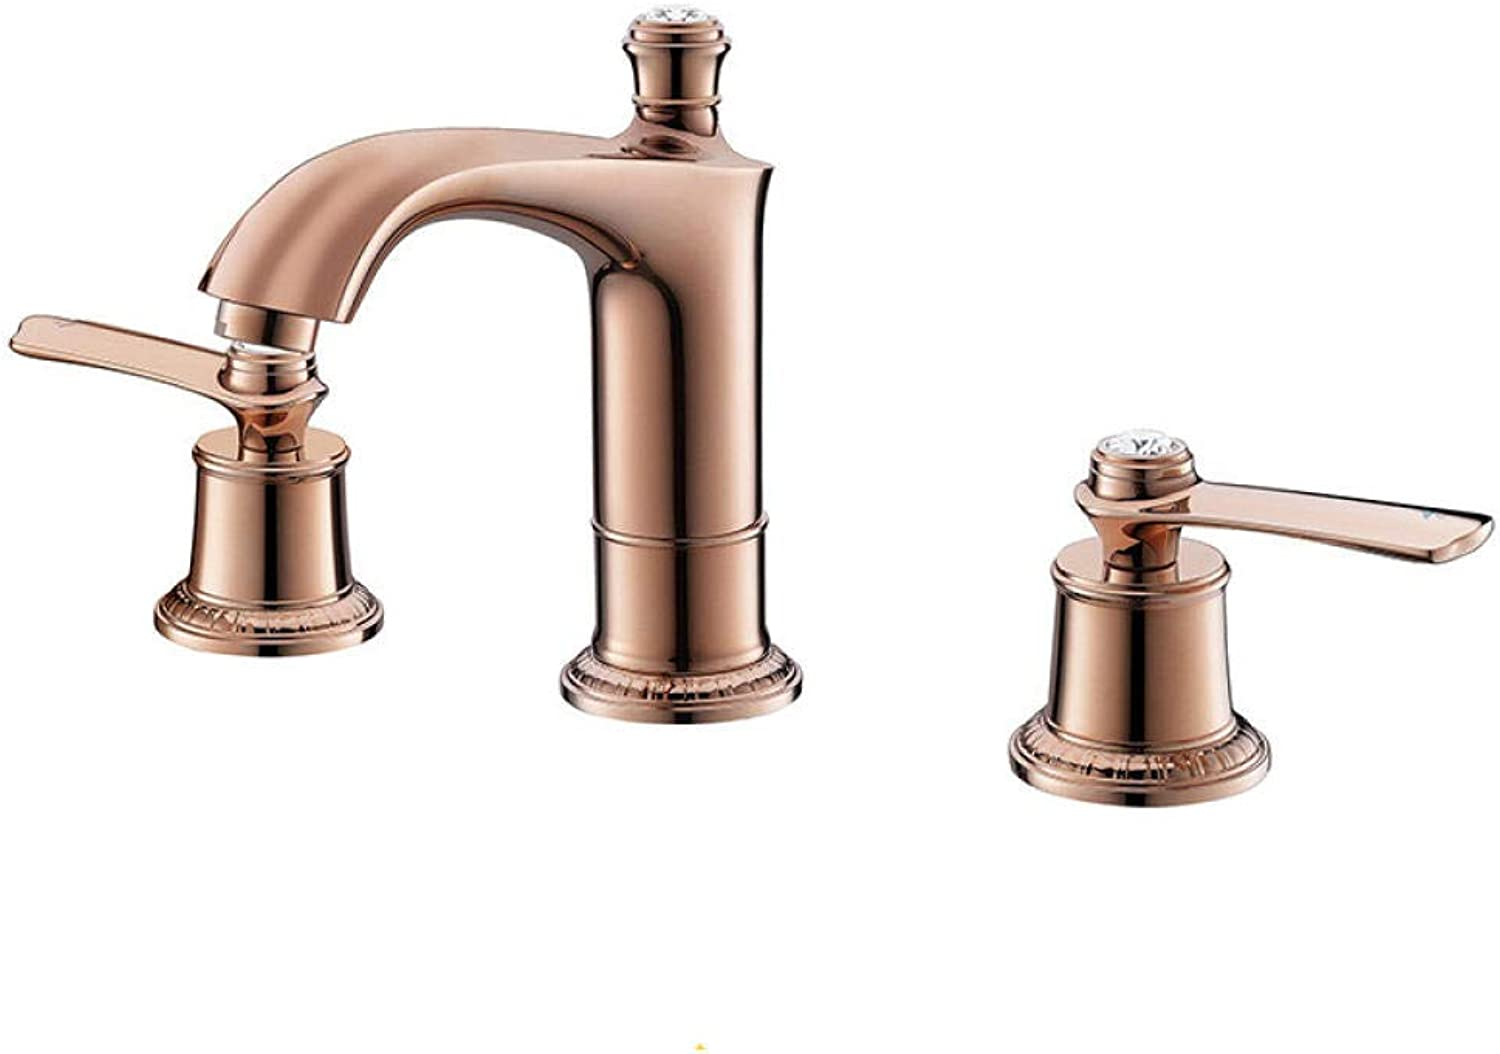 Aimeishi Hot and cold water faucet split type hot and cold wash basin faucet bathroom triple double basin@800811M